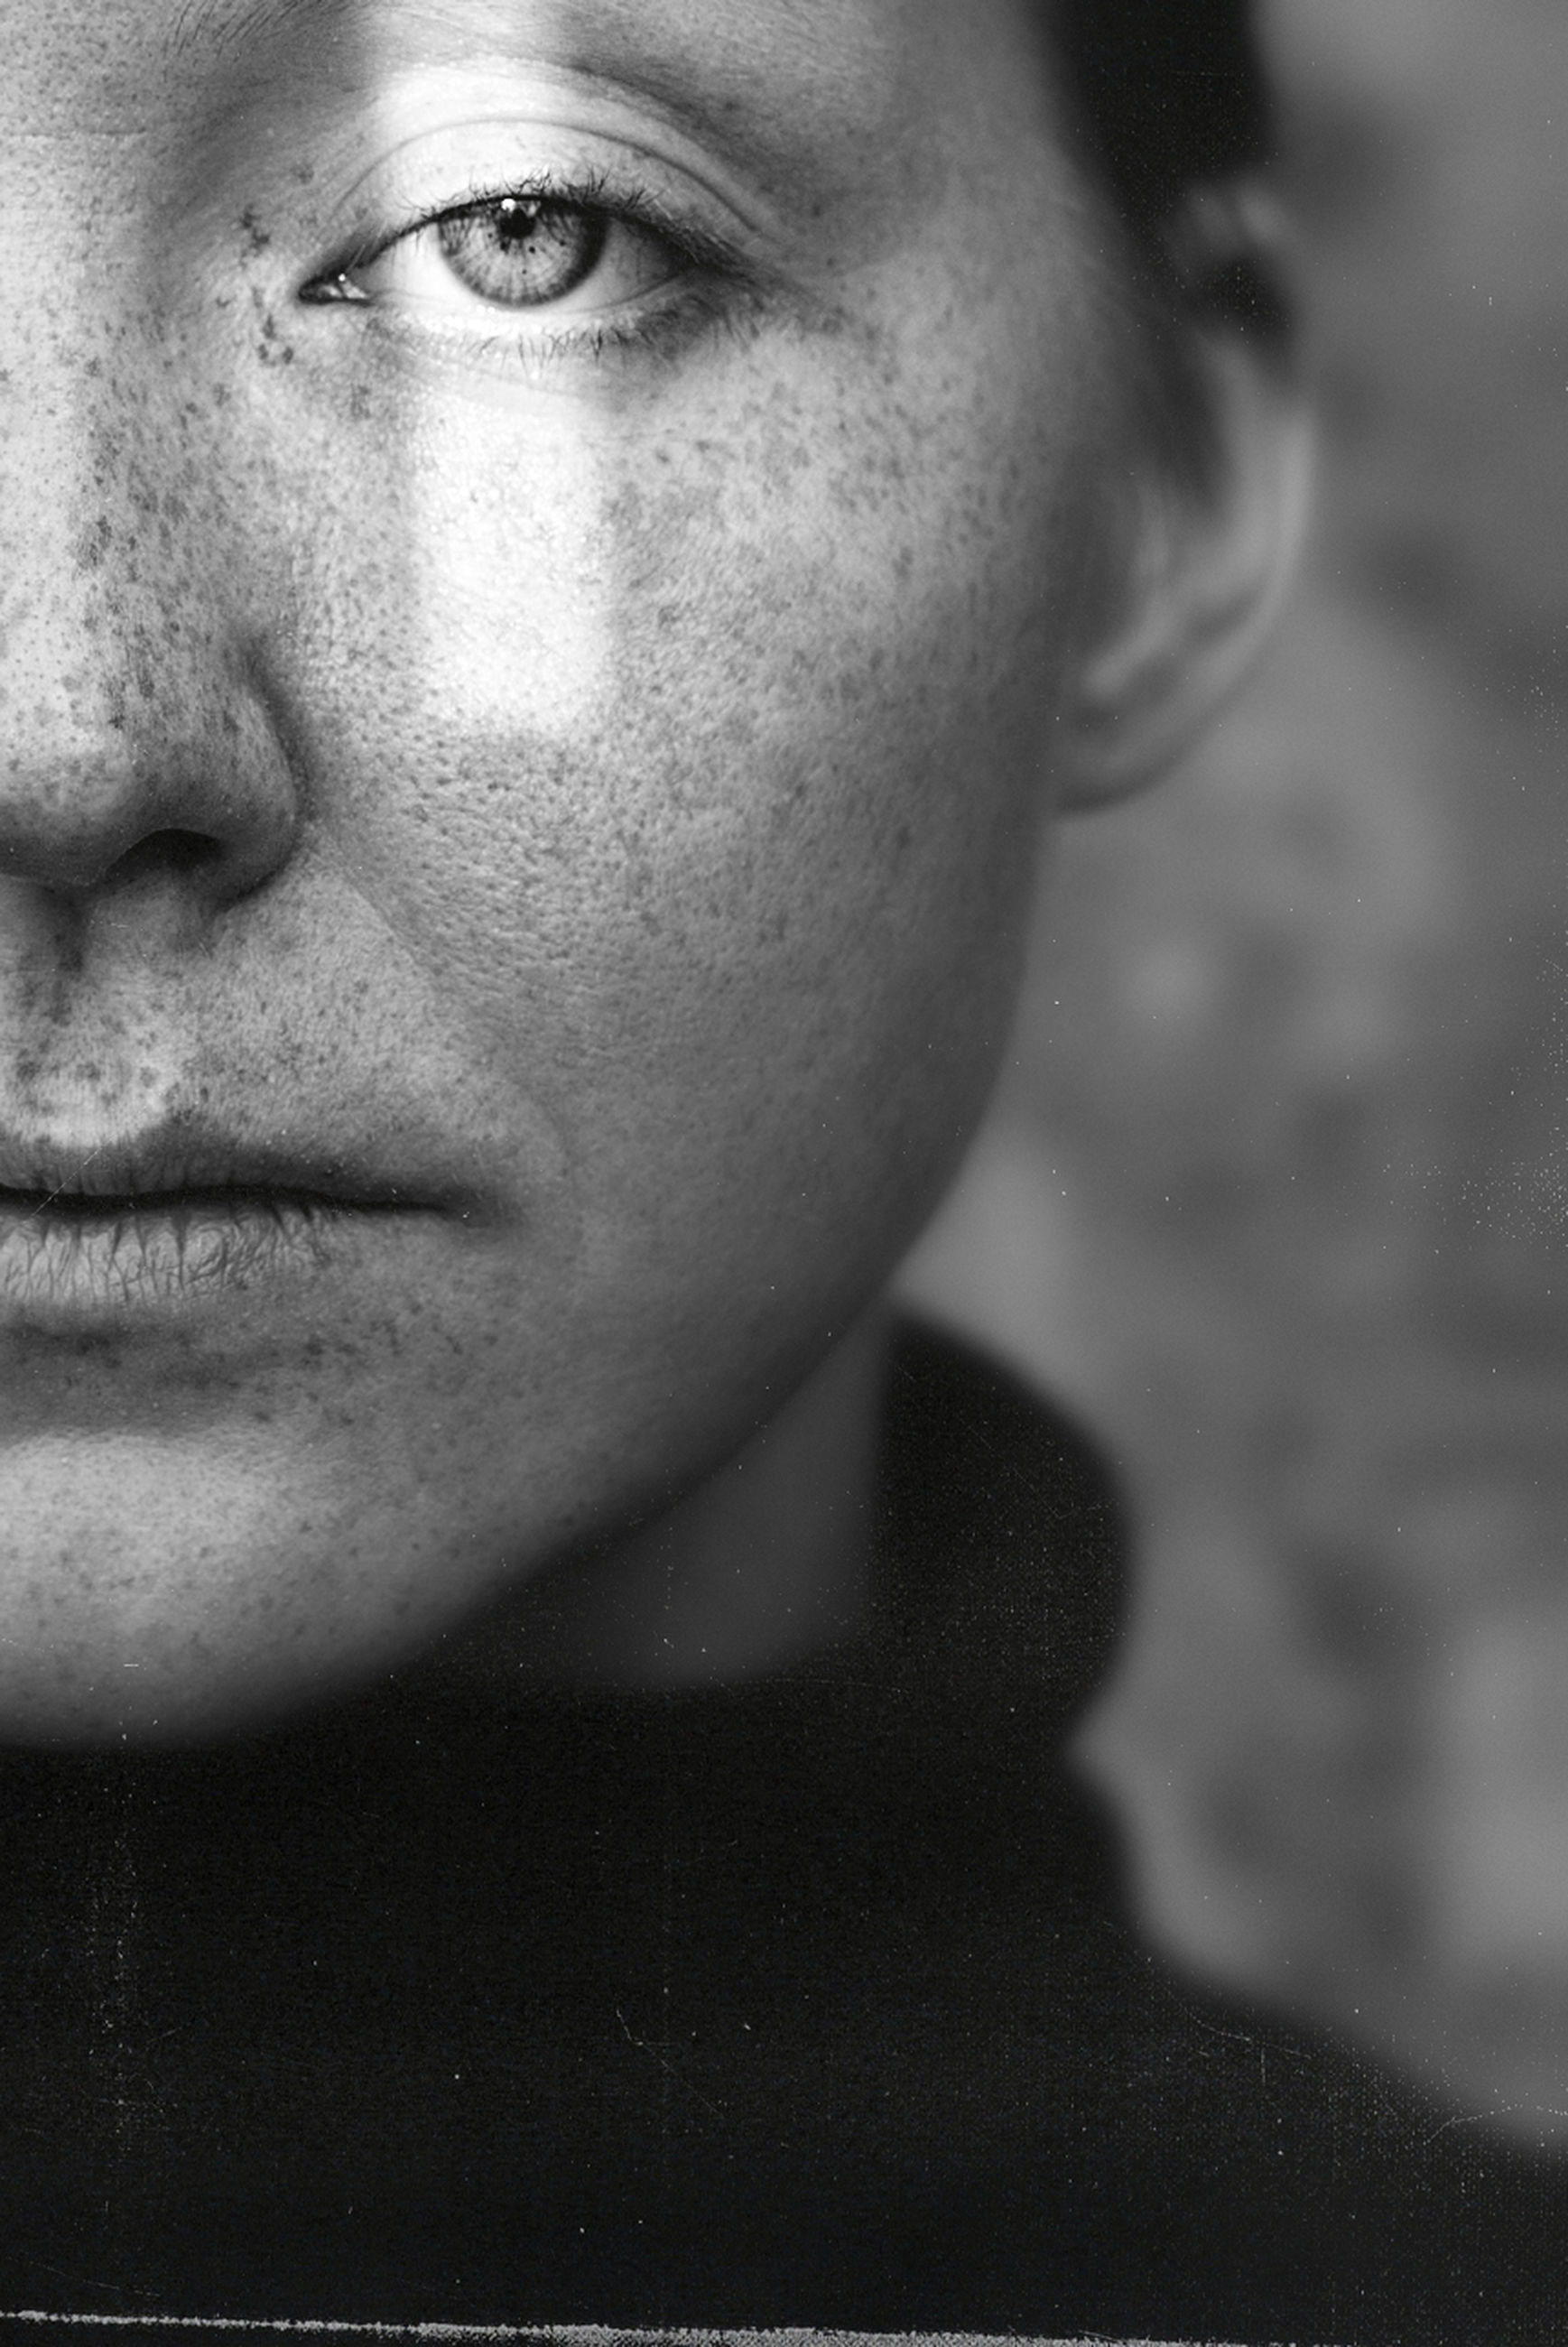 portrait, human face, one person, black, black and white, adult, monochrome, monochrome photography, headshot, portrait photography, close-up, human head, human eye, women, young adult, white, nose, person, serious, sadness, skin, contemplation, looking, female, looking at camera, indoors, front view, emotion, lifestyles